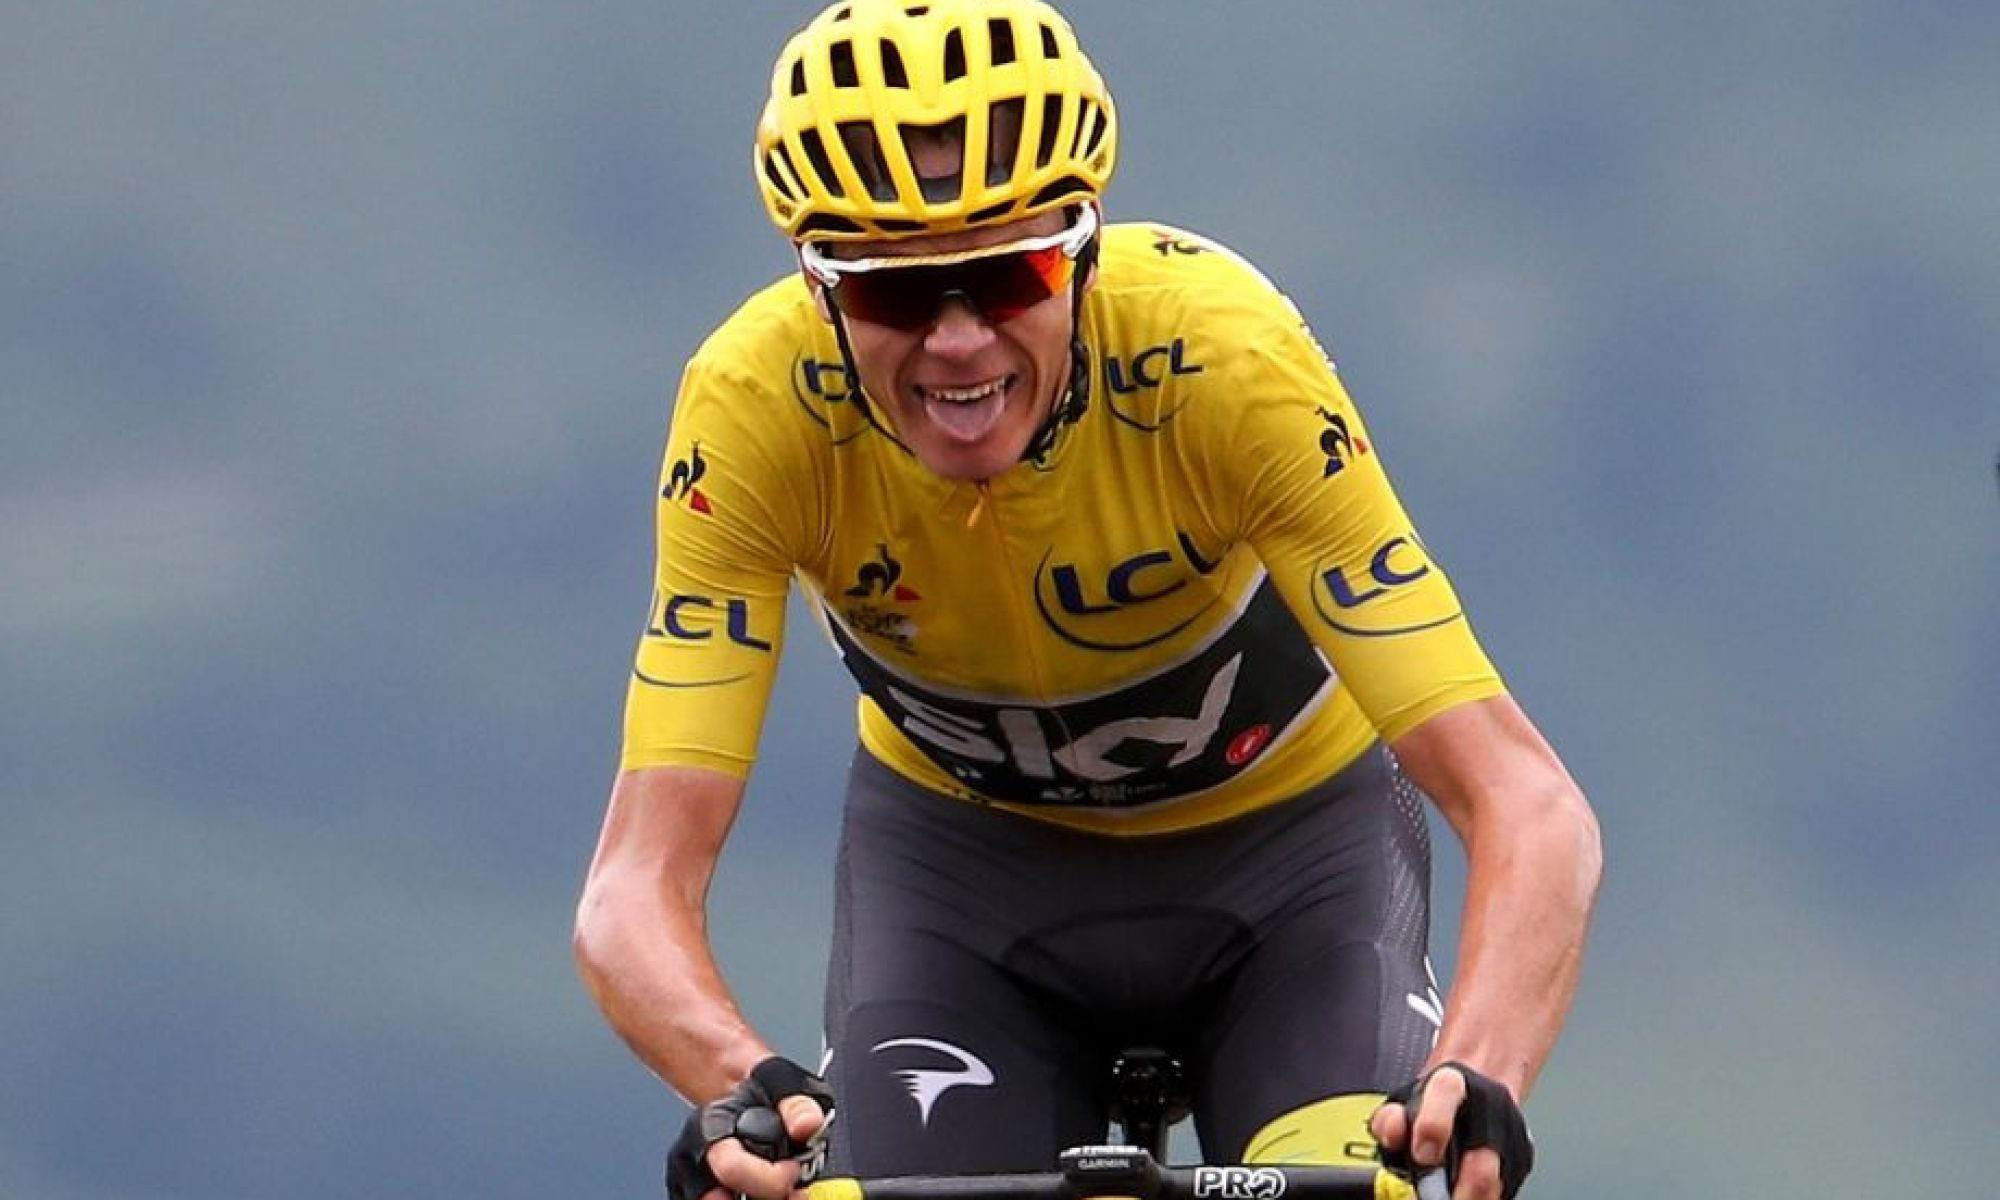 Chris Froome signs with Israel Start-Up Nation